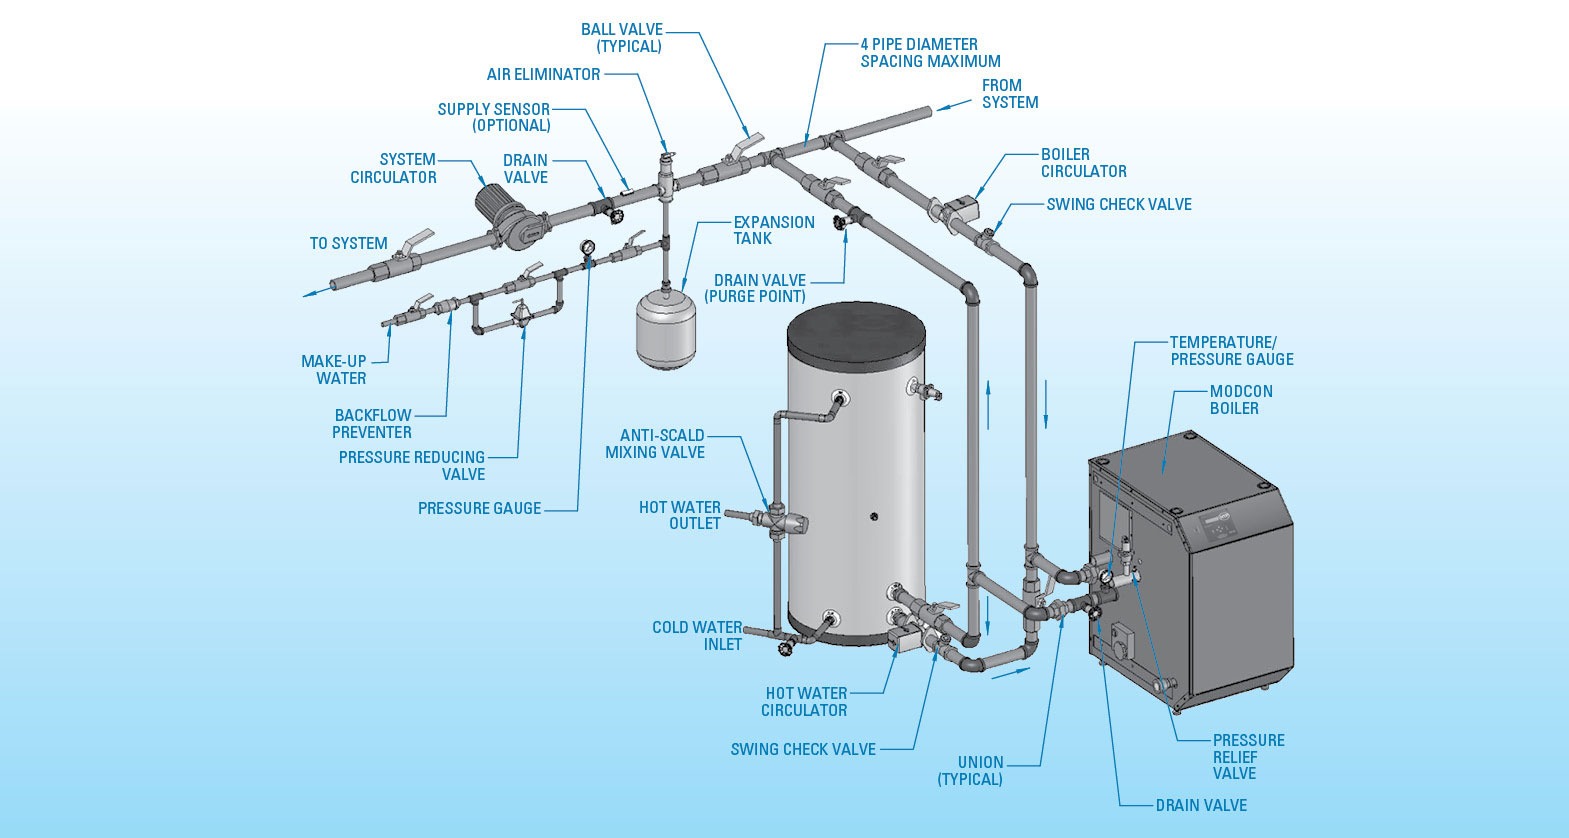 ModCon Indirect htp mod con double stack boiler boiler installation diagram at panicattacktreatment.co